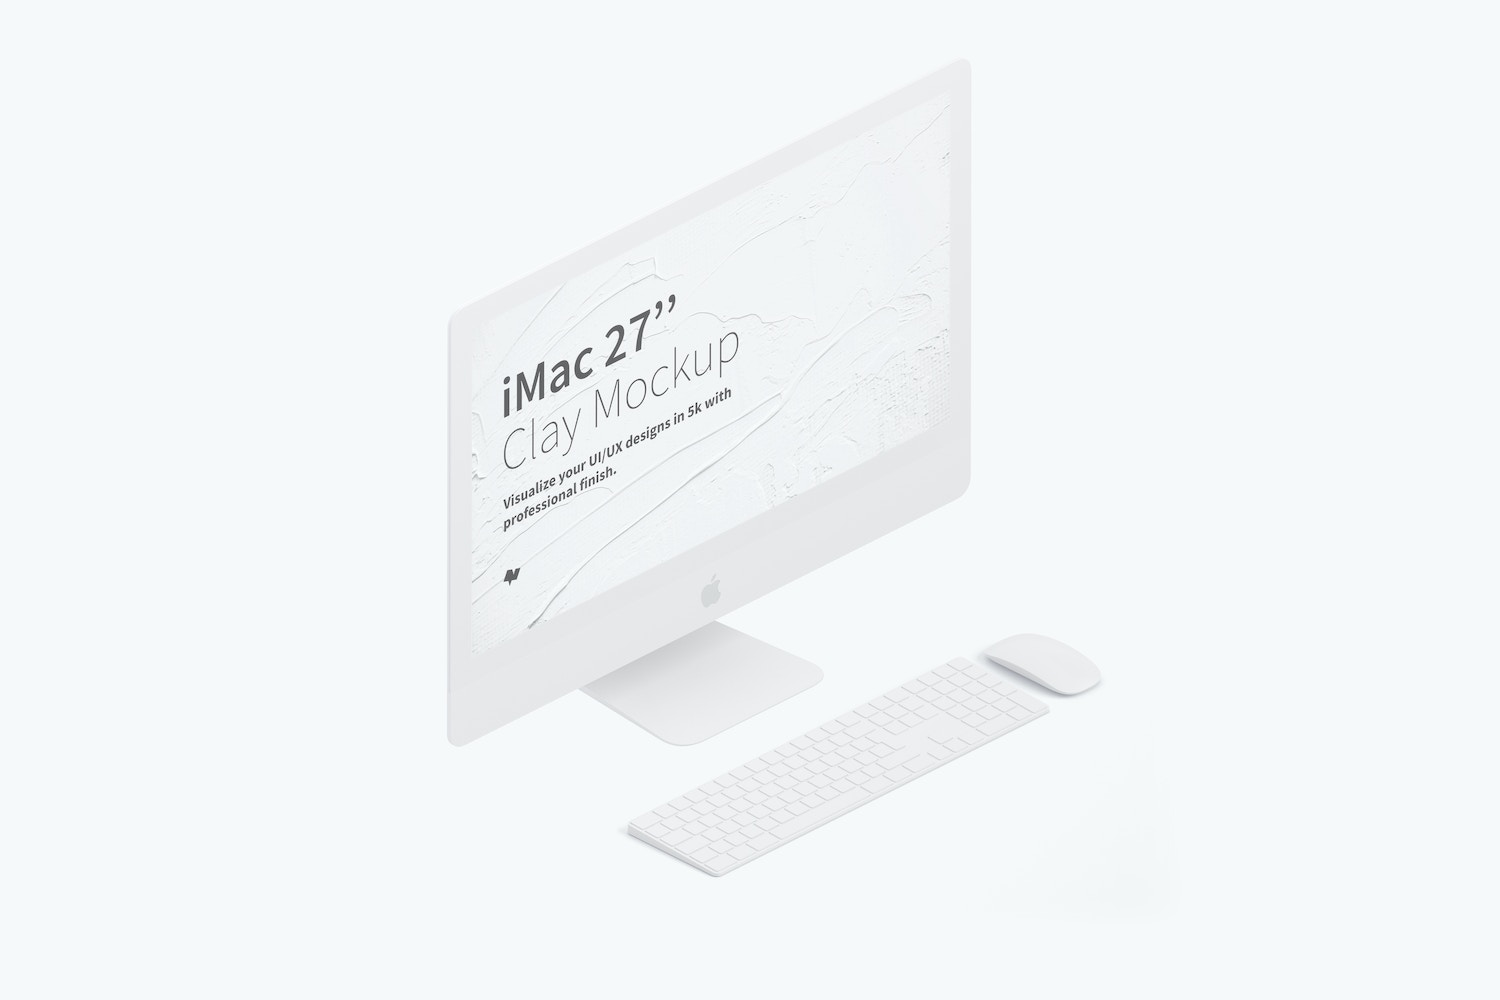 "Clay iMac 27"" Mockup, Isometric Left View by Original Mockups on Original Mockups"